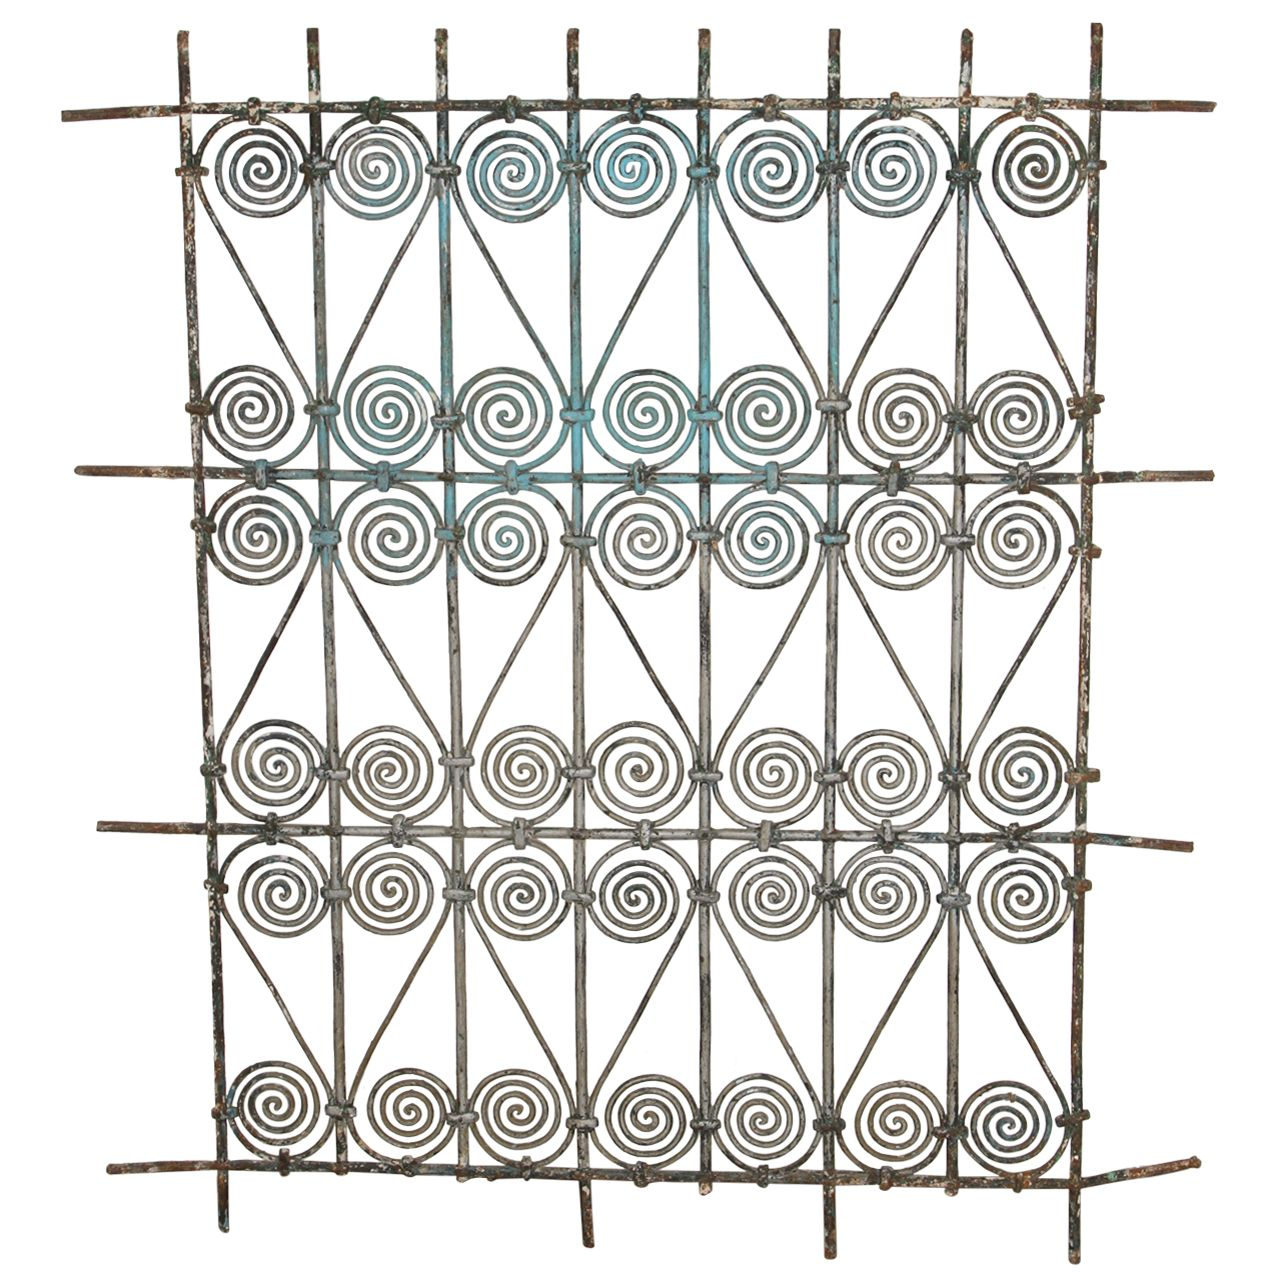 Moroccan Wrought Iron Window Grills 3